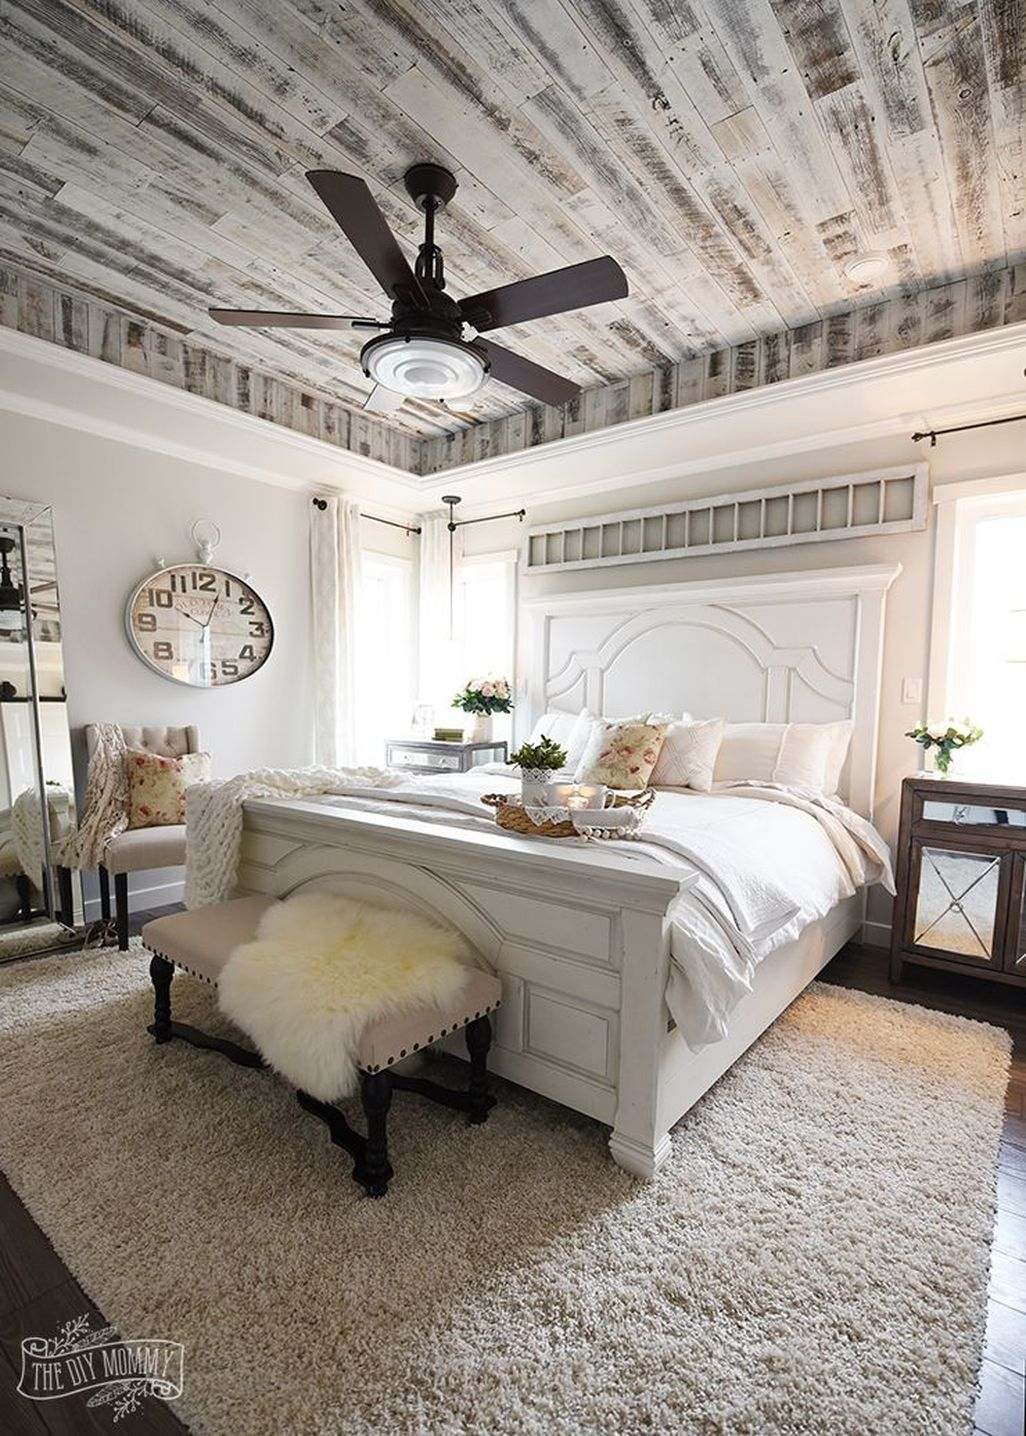 farmhouse room decor rustic farmhouse bedroom bedroom decor pinterest farmhouse cool 45 Awesome Rustic Farmhouse Bedroom Decoration Ideas  https:--homedecorish.com-